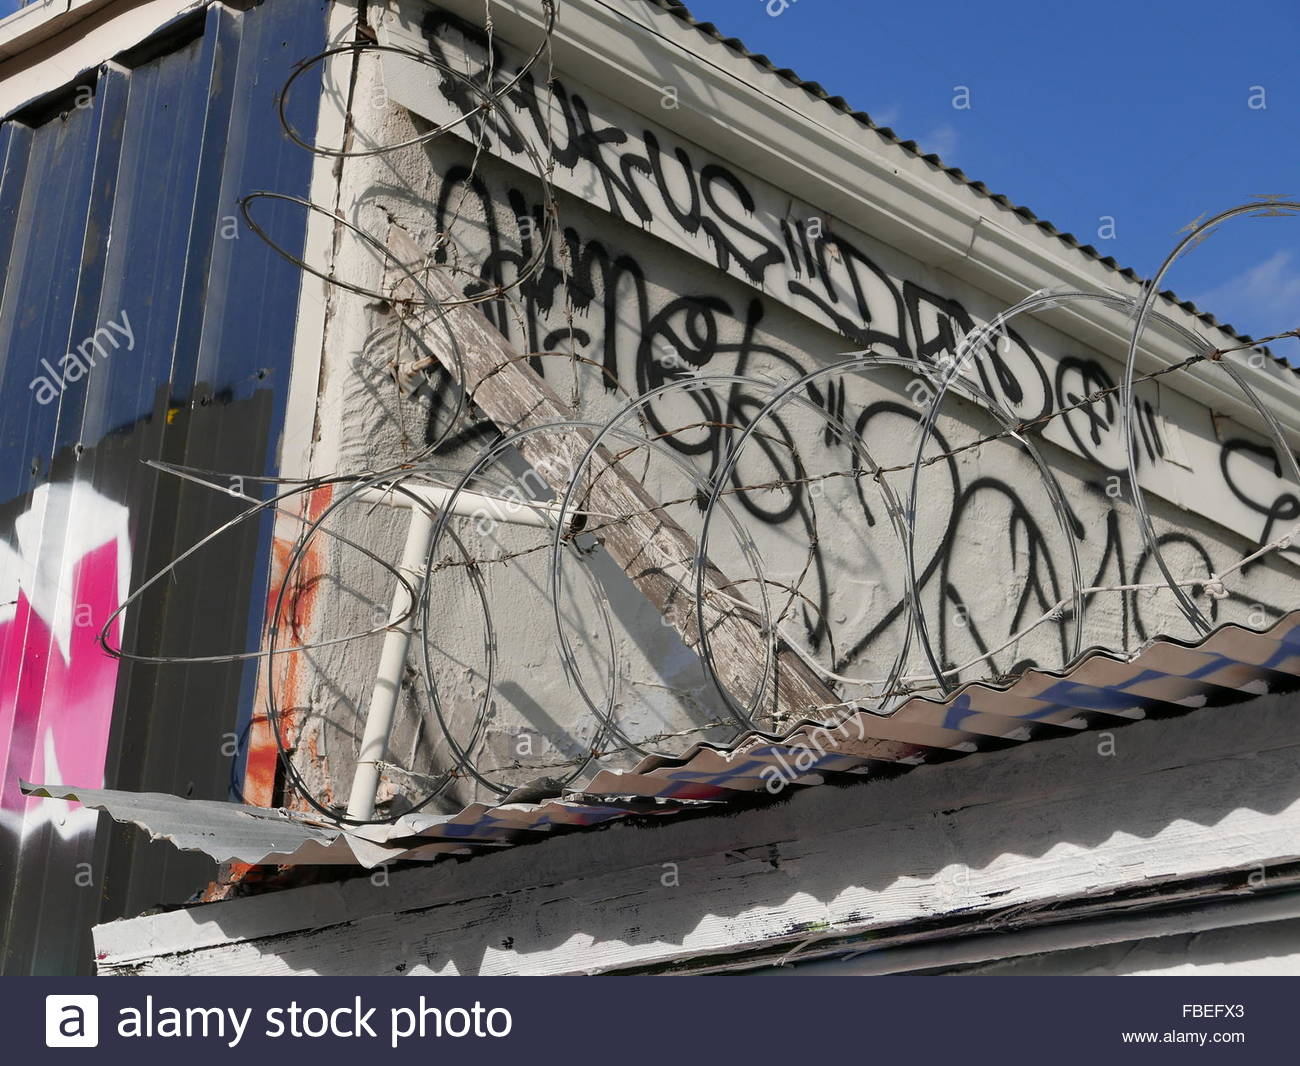 Low Angle View Of Razor Wire Fence On Roof Stock Photo: 93132875 - Alamy